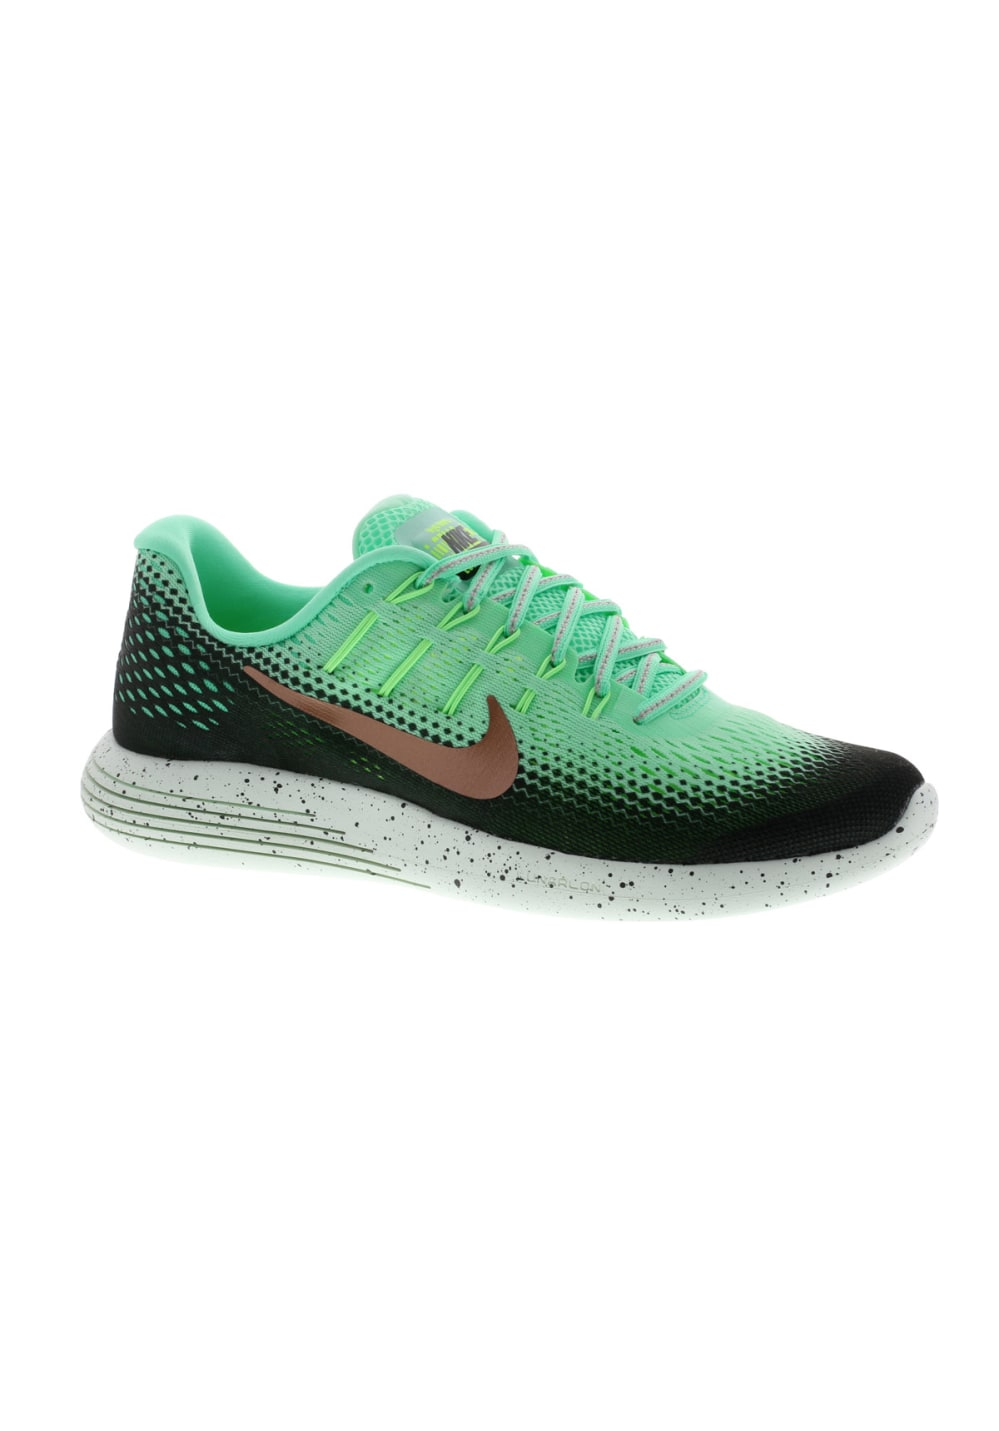 ede7236a43 Next. -50%. This product is currently out of stock. Nike. Lunarglide 8  Shield - Running shoes ...